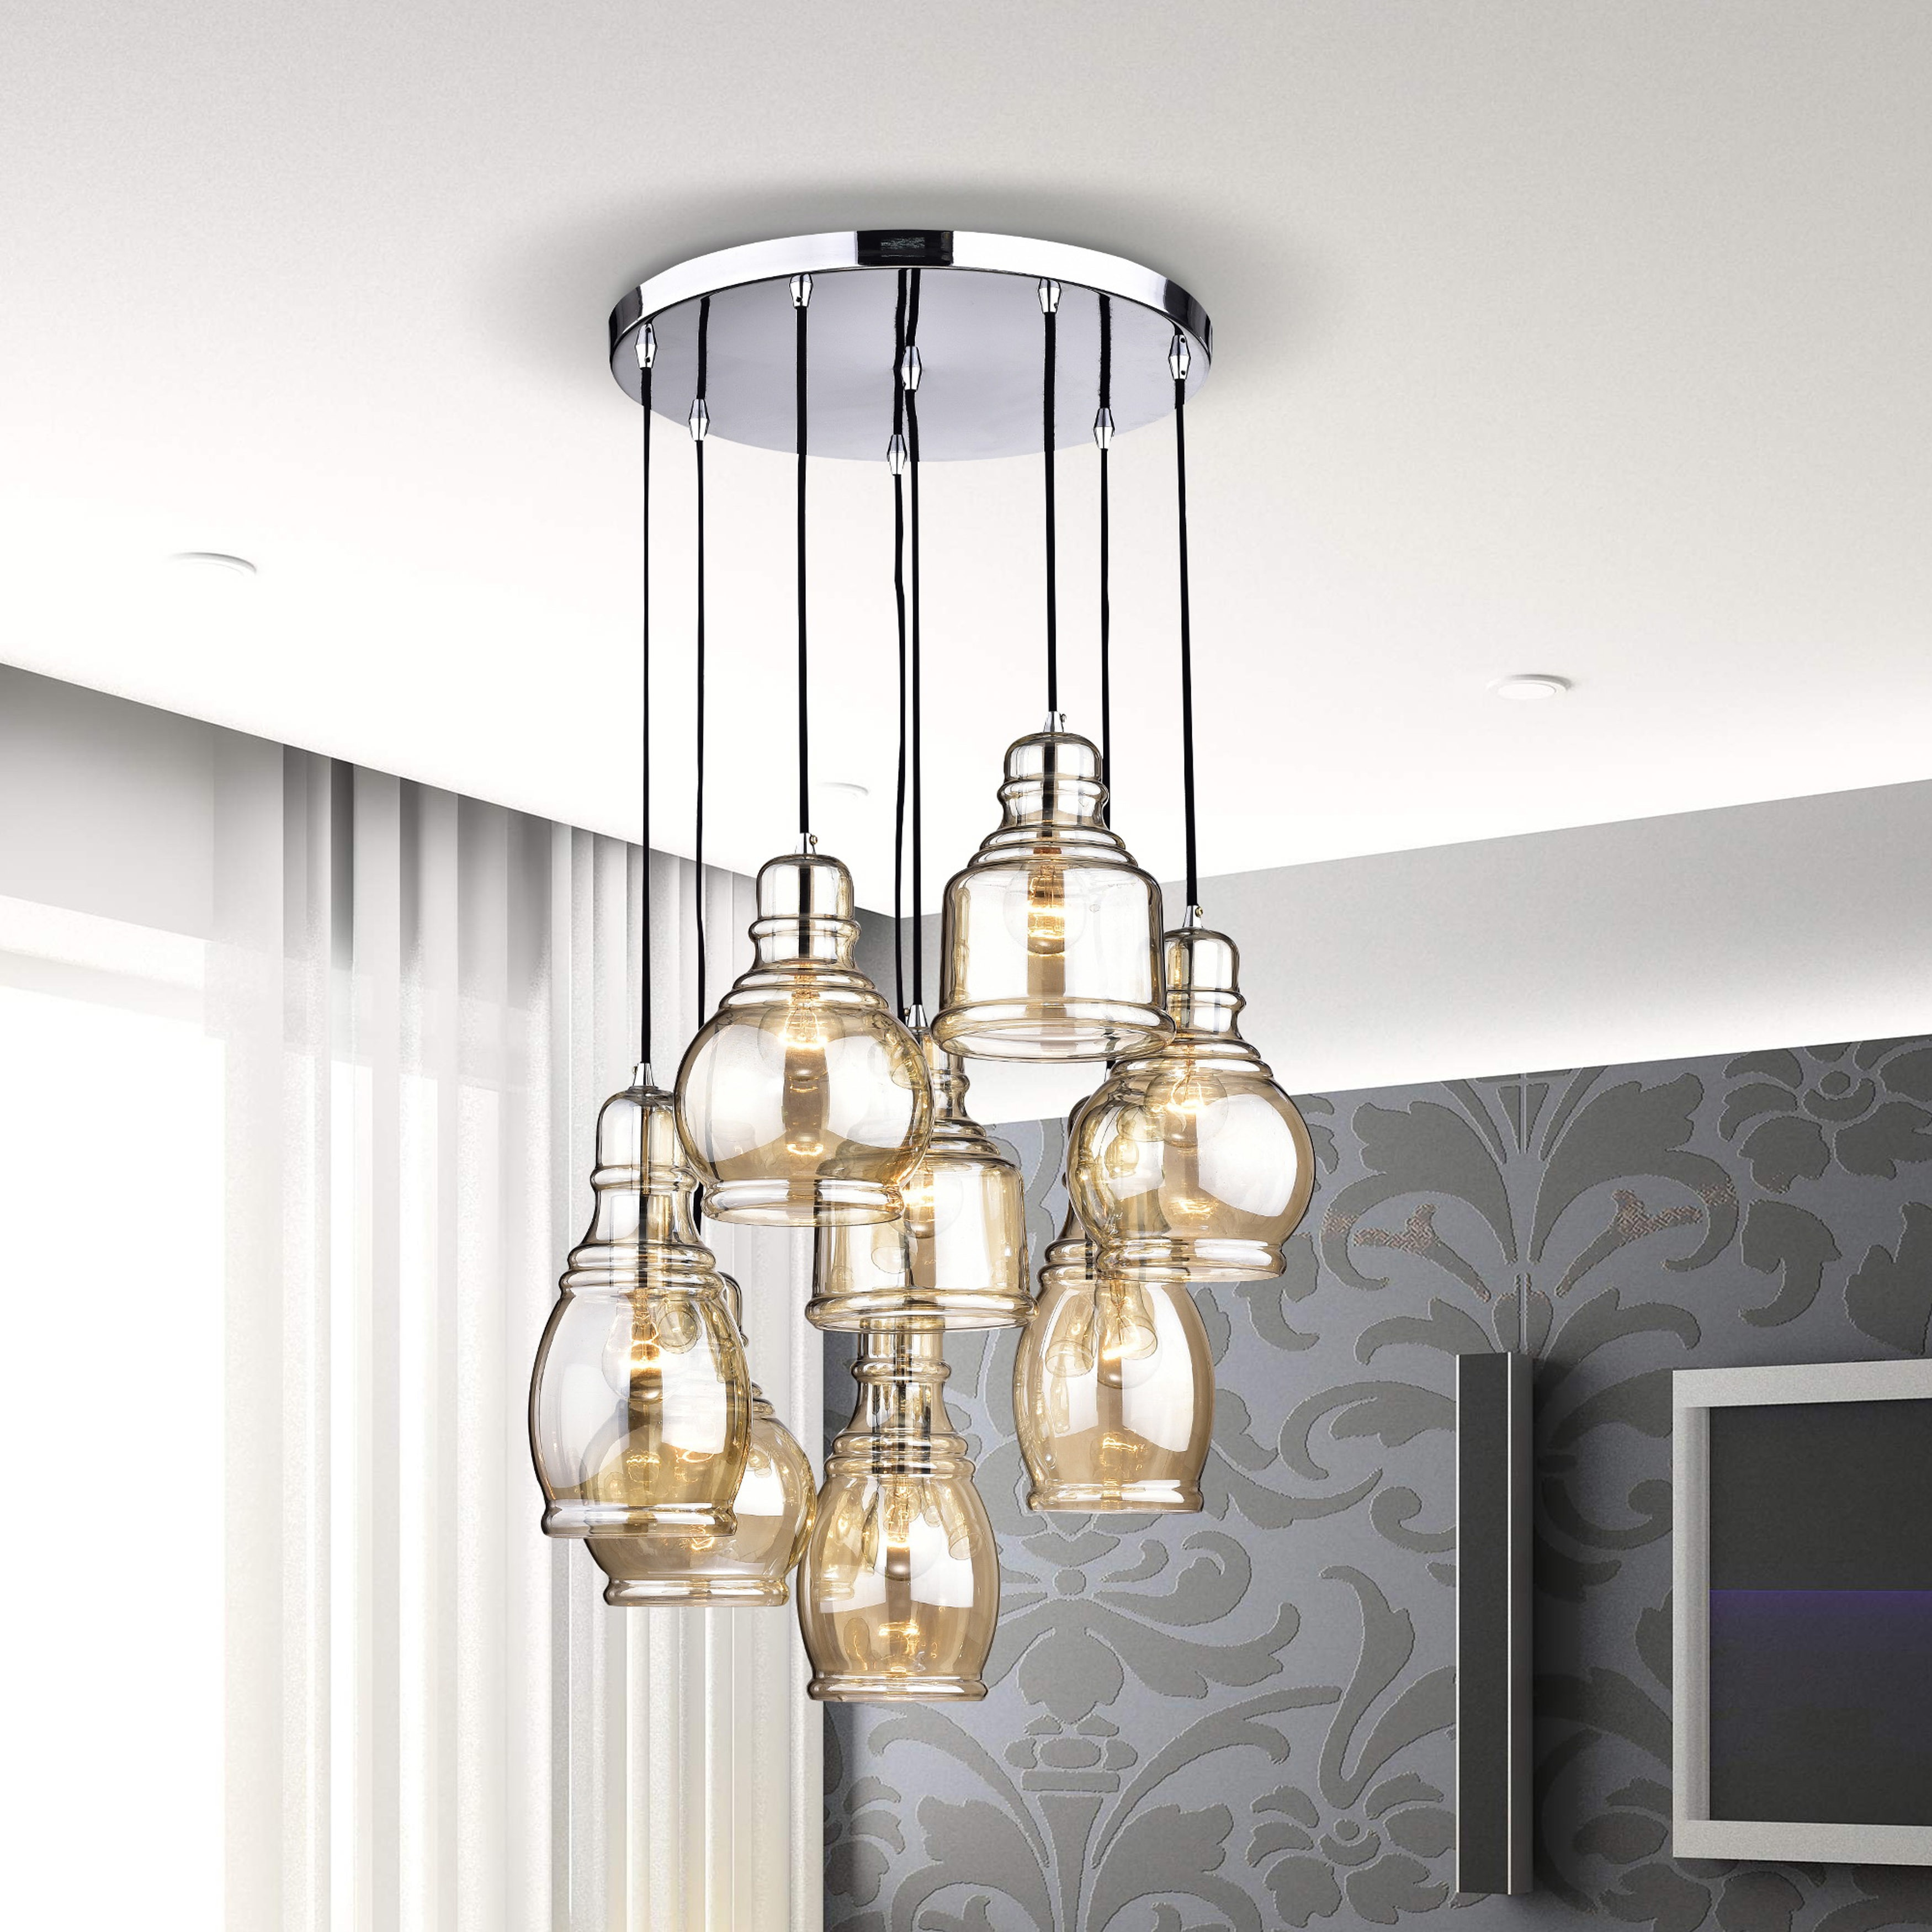 Mariana 8 light cognac glass cluster pendant chandelier with mariana 8 light cognac glass cluster pendant chandelier with chrome finish and round base free shipping today overstock 22942433 arubaitofo Gallery